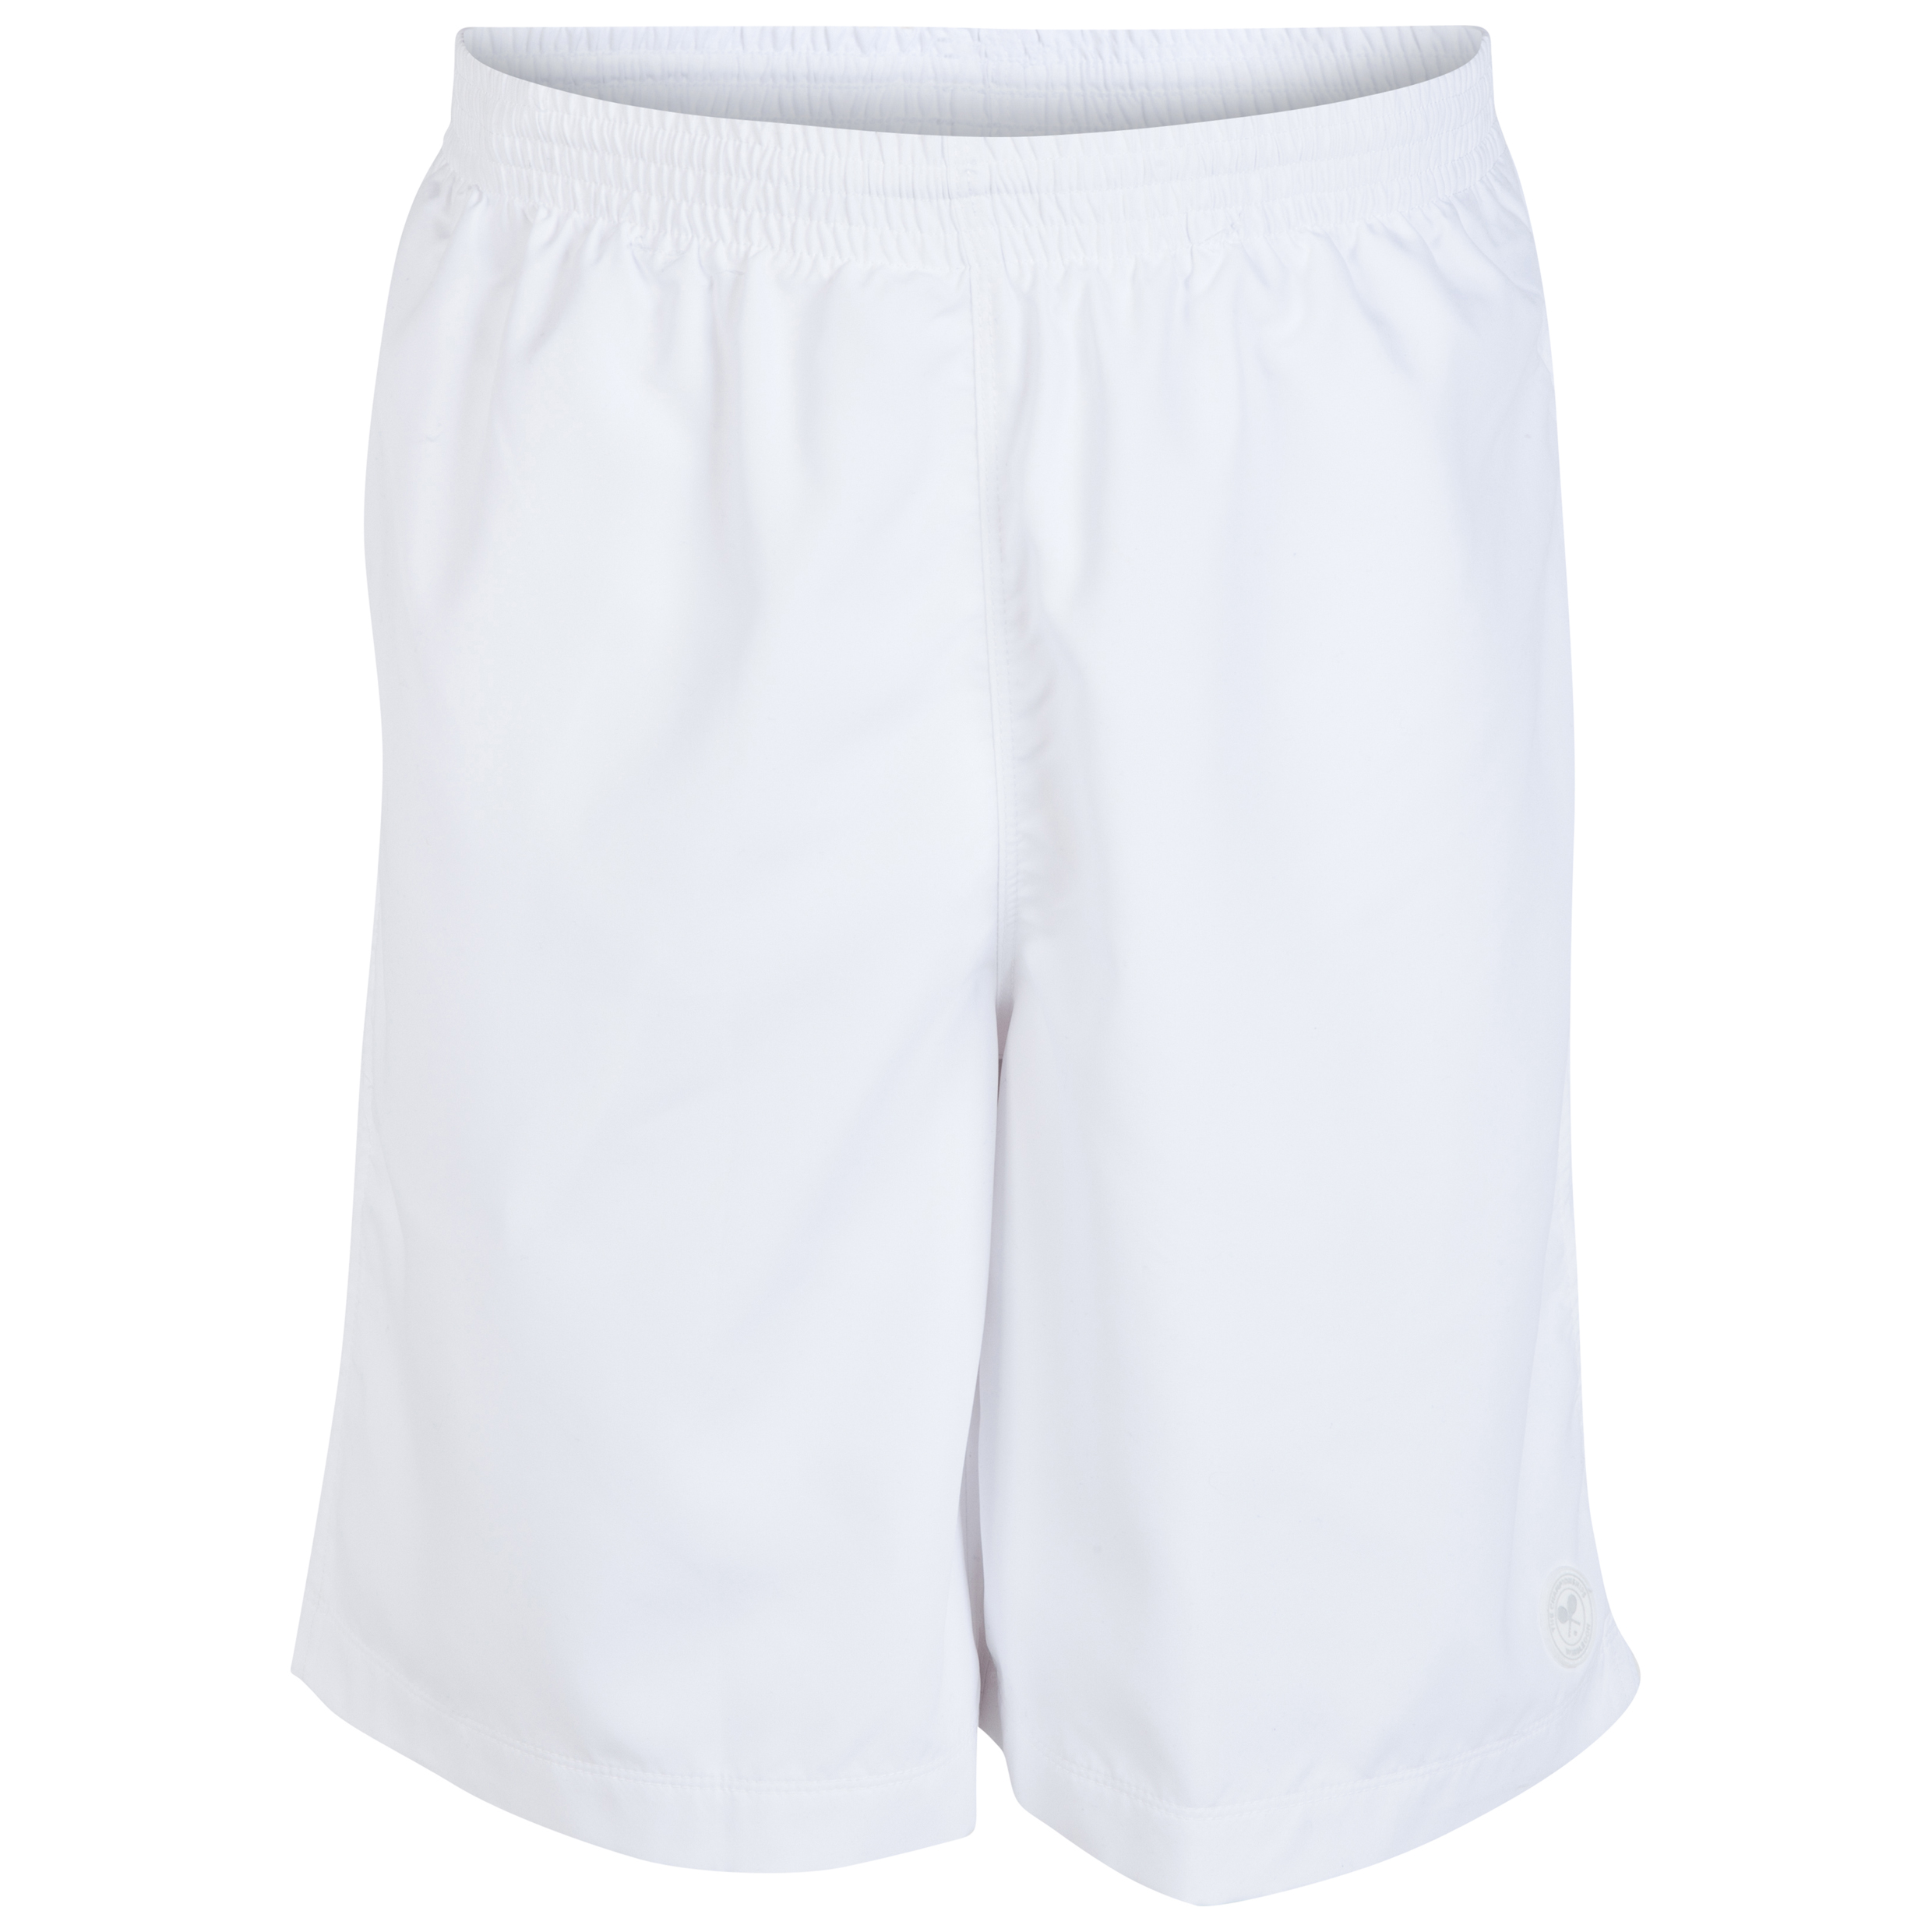 Wimbledon Player Shorts - Boys White